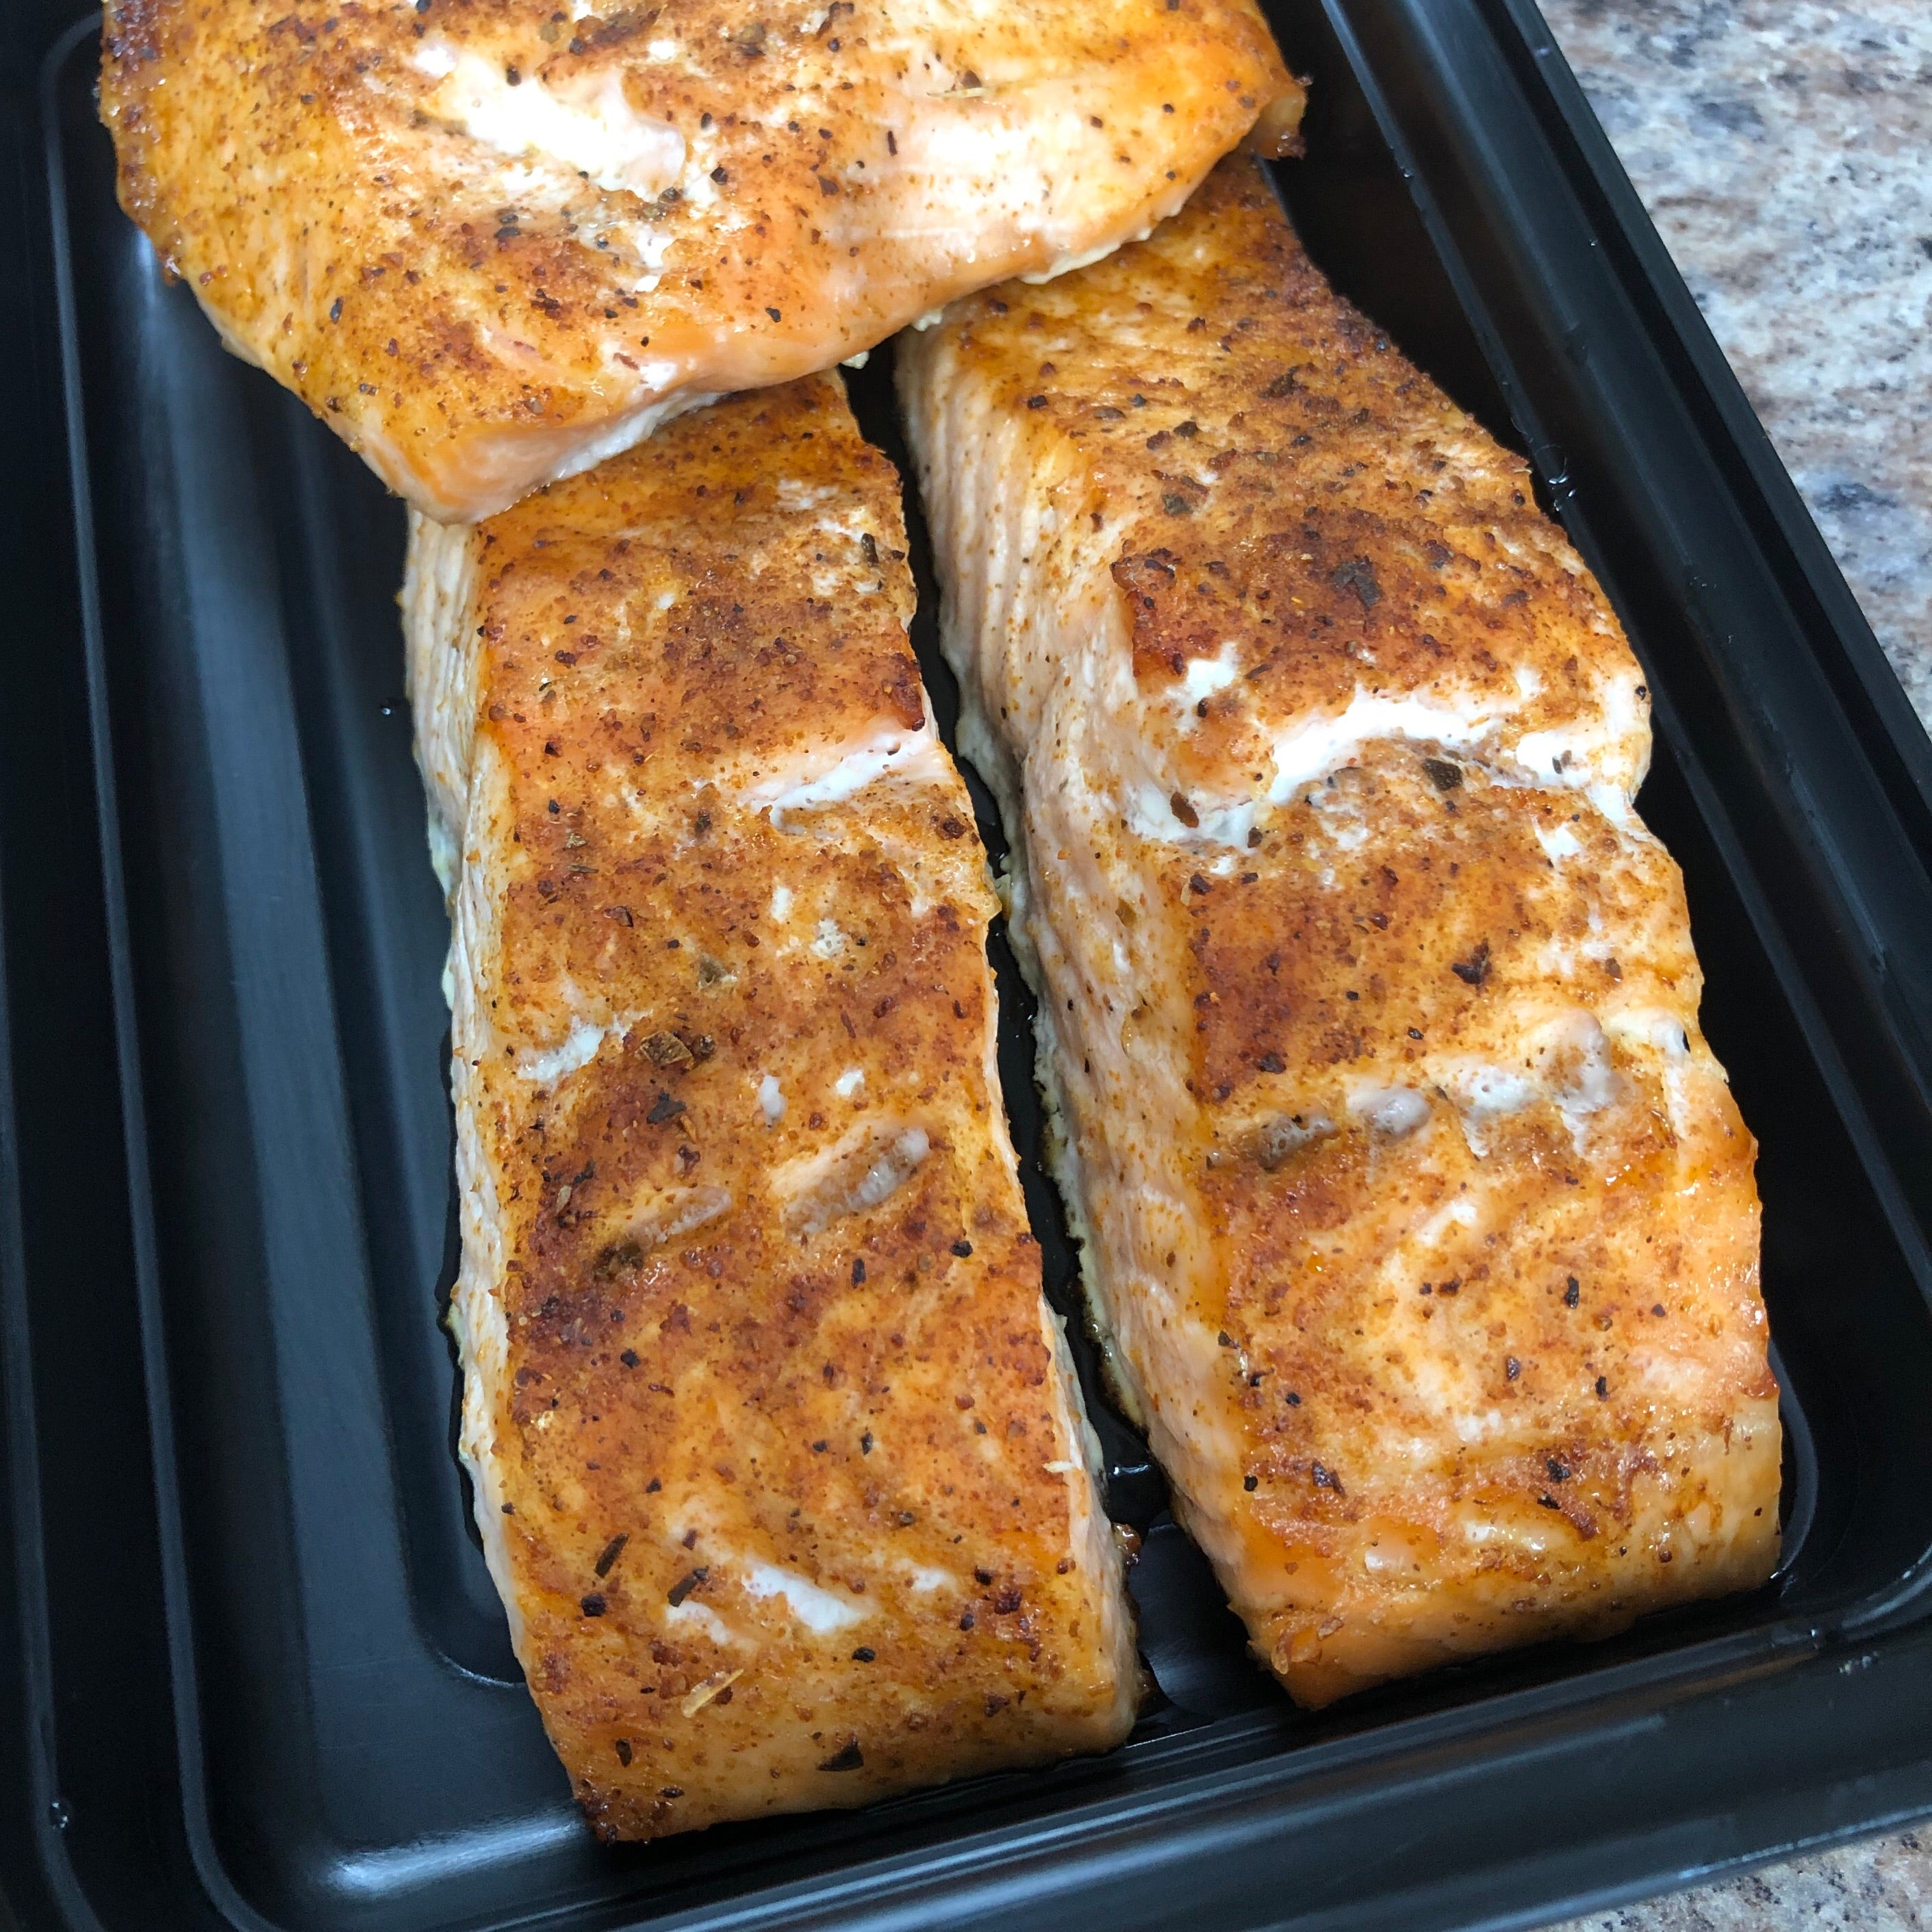 Baked Salmon (1LB)